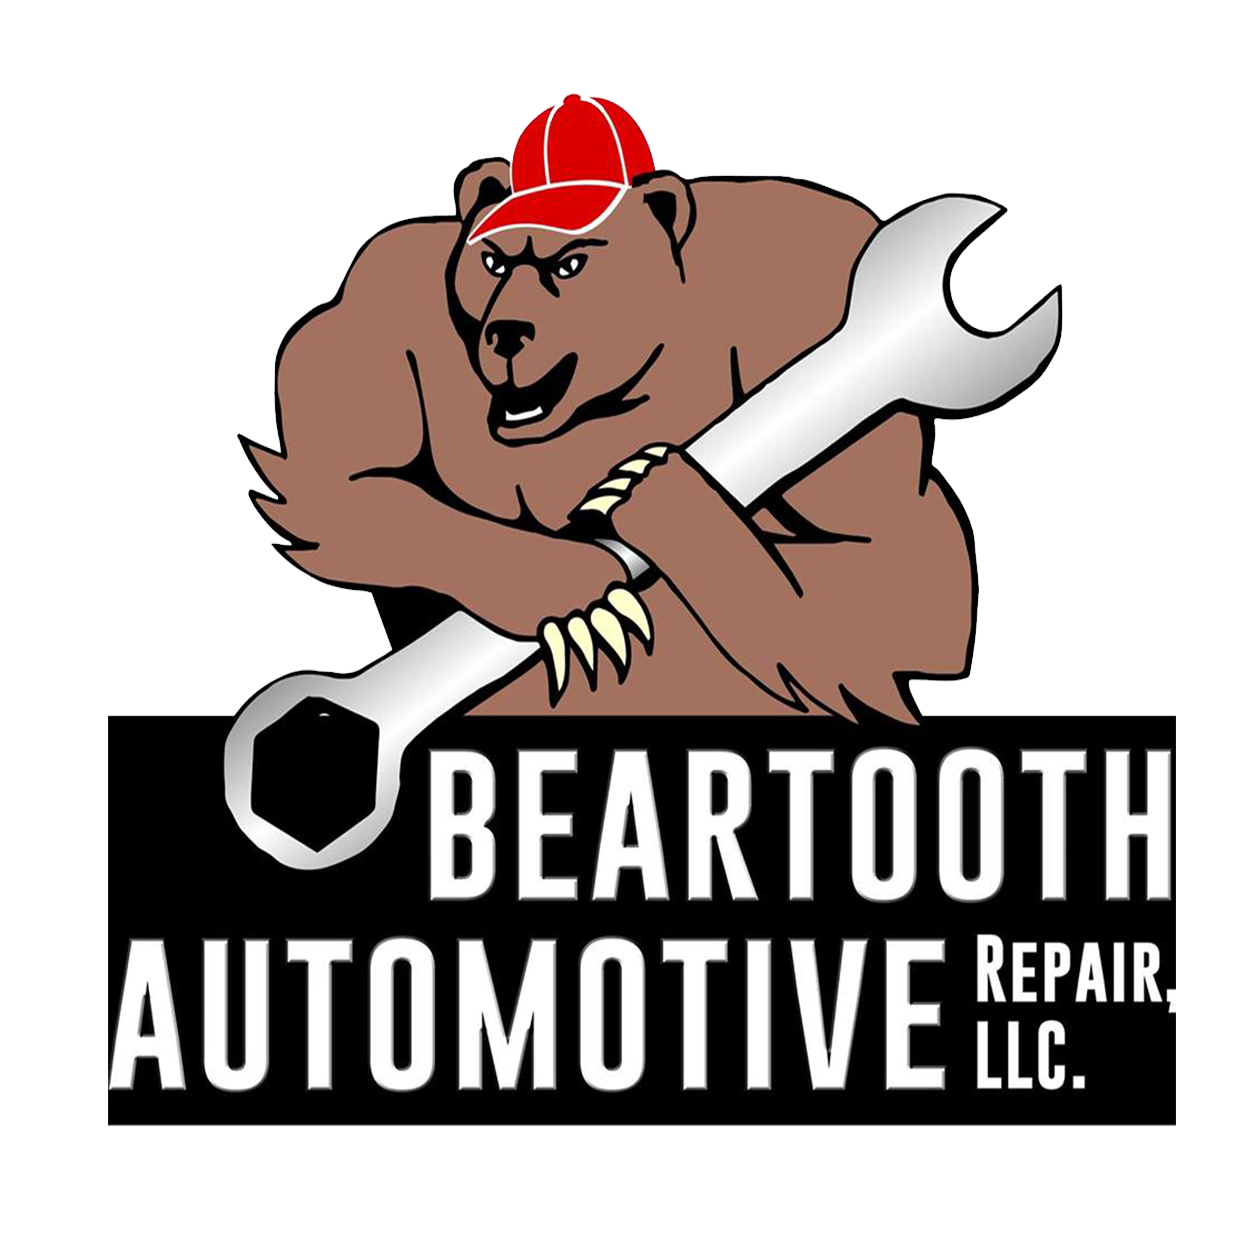 Beartooth Automotive Repair, LLC.